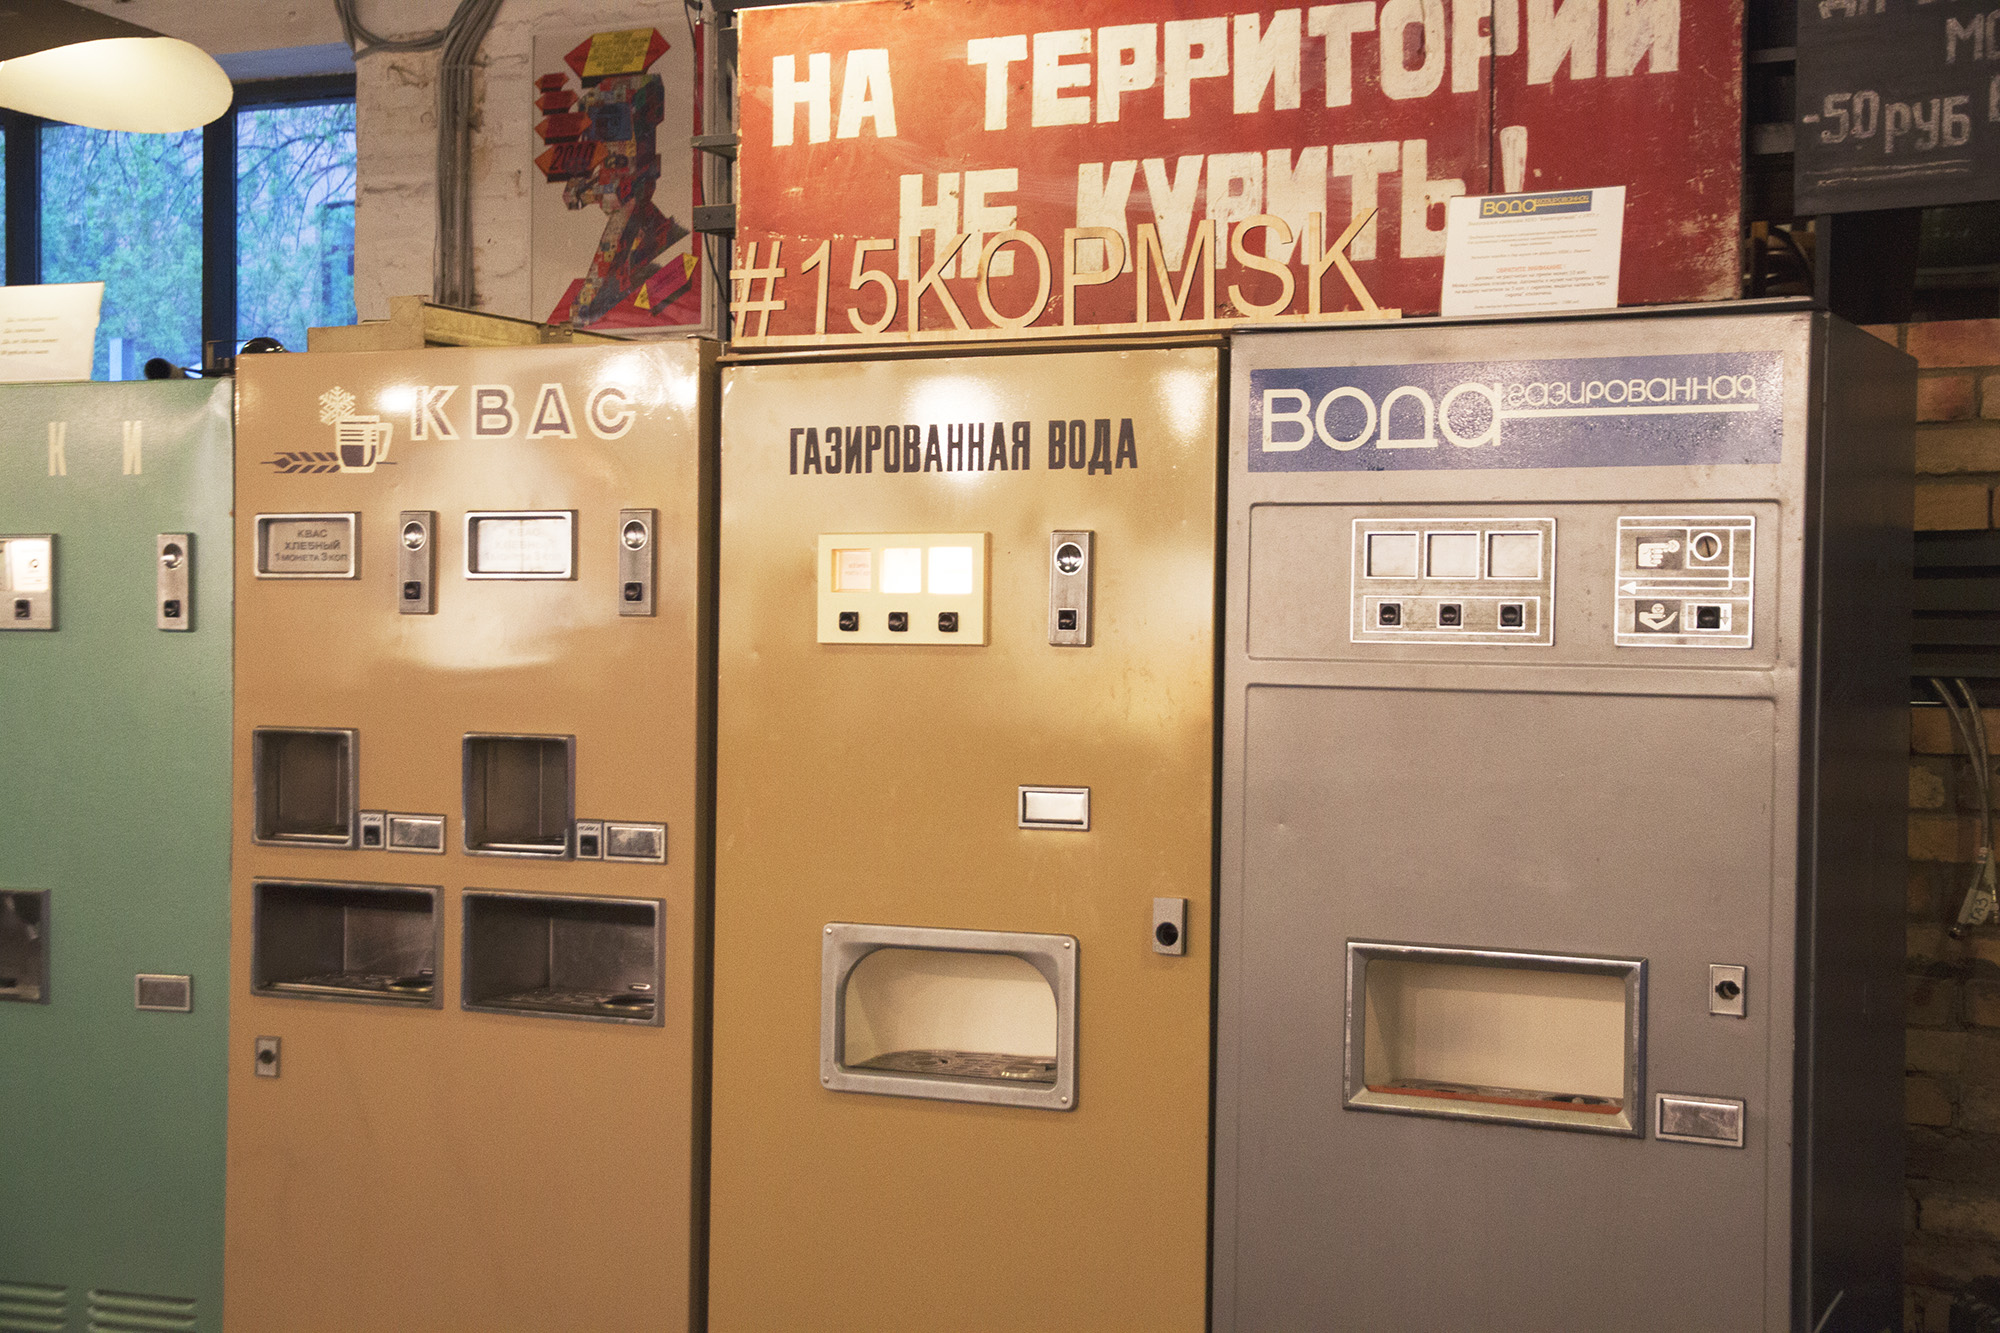 Soviet vending machines — kvas, carbonated water, and plain old water